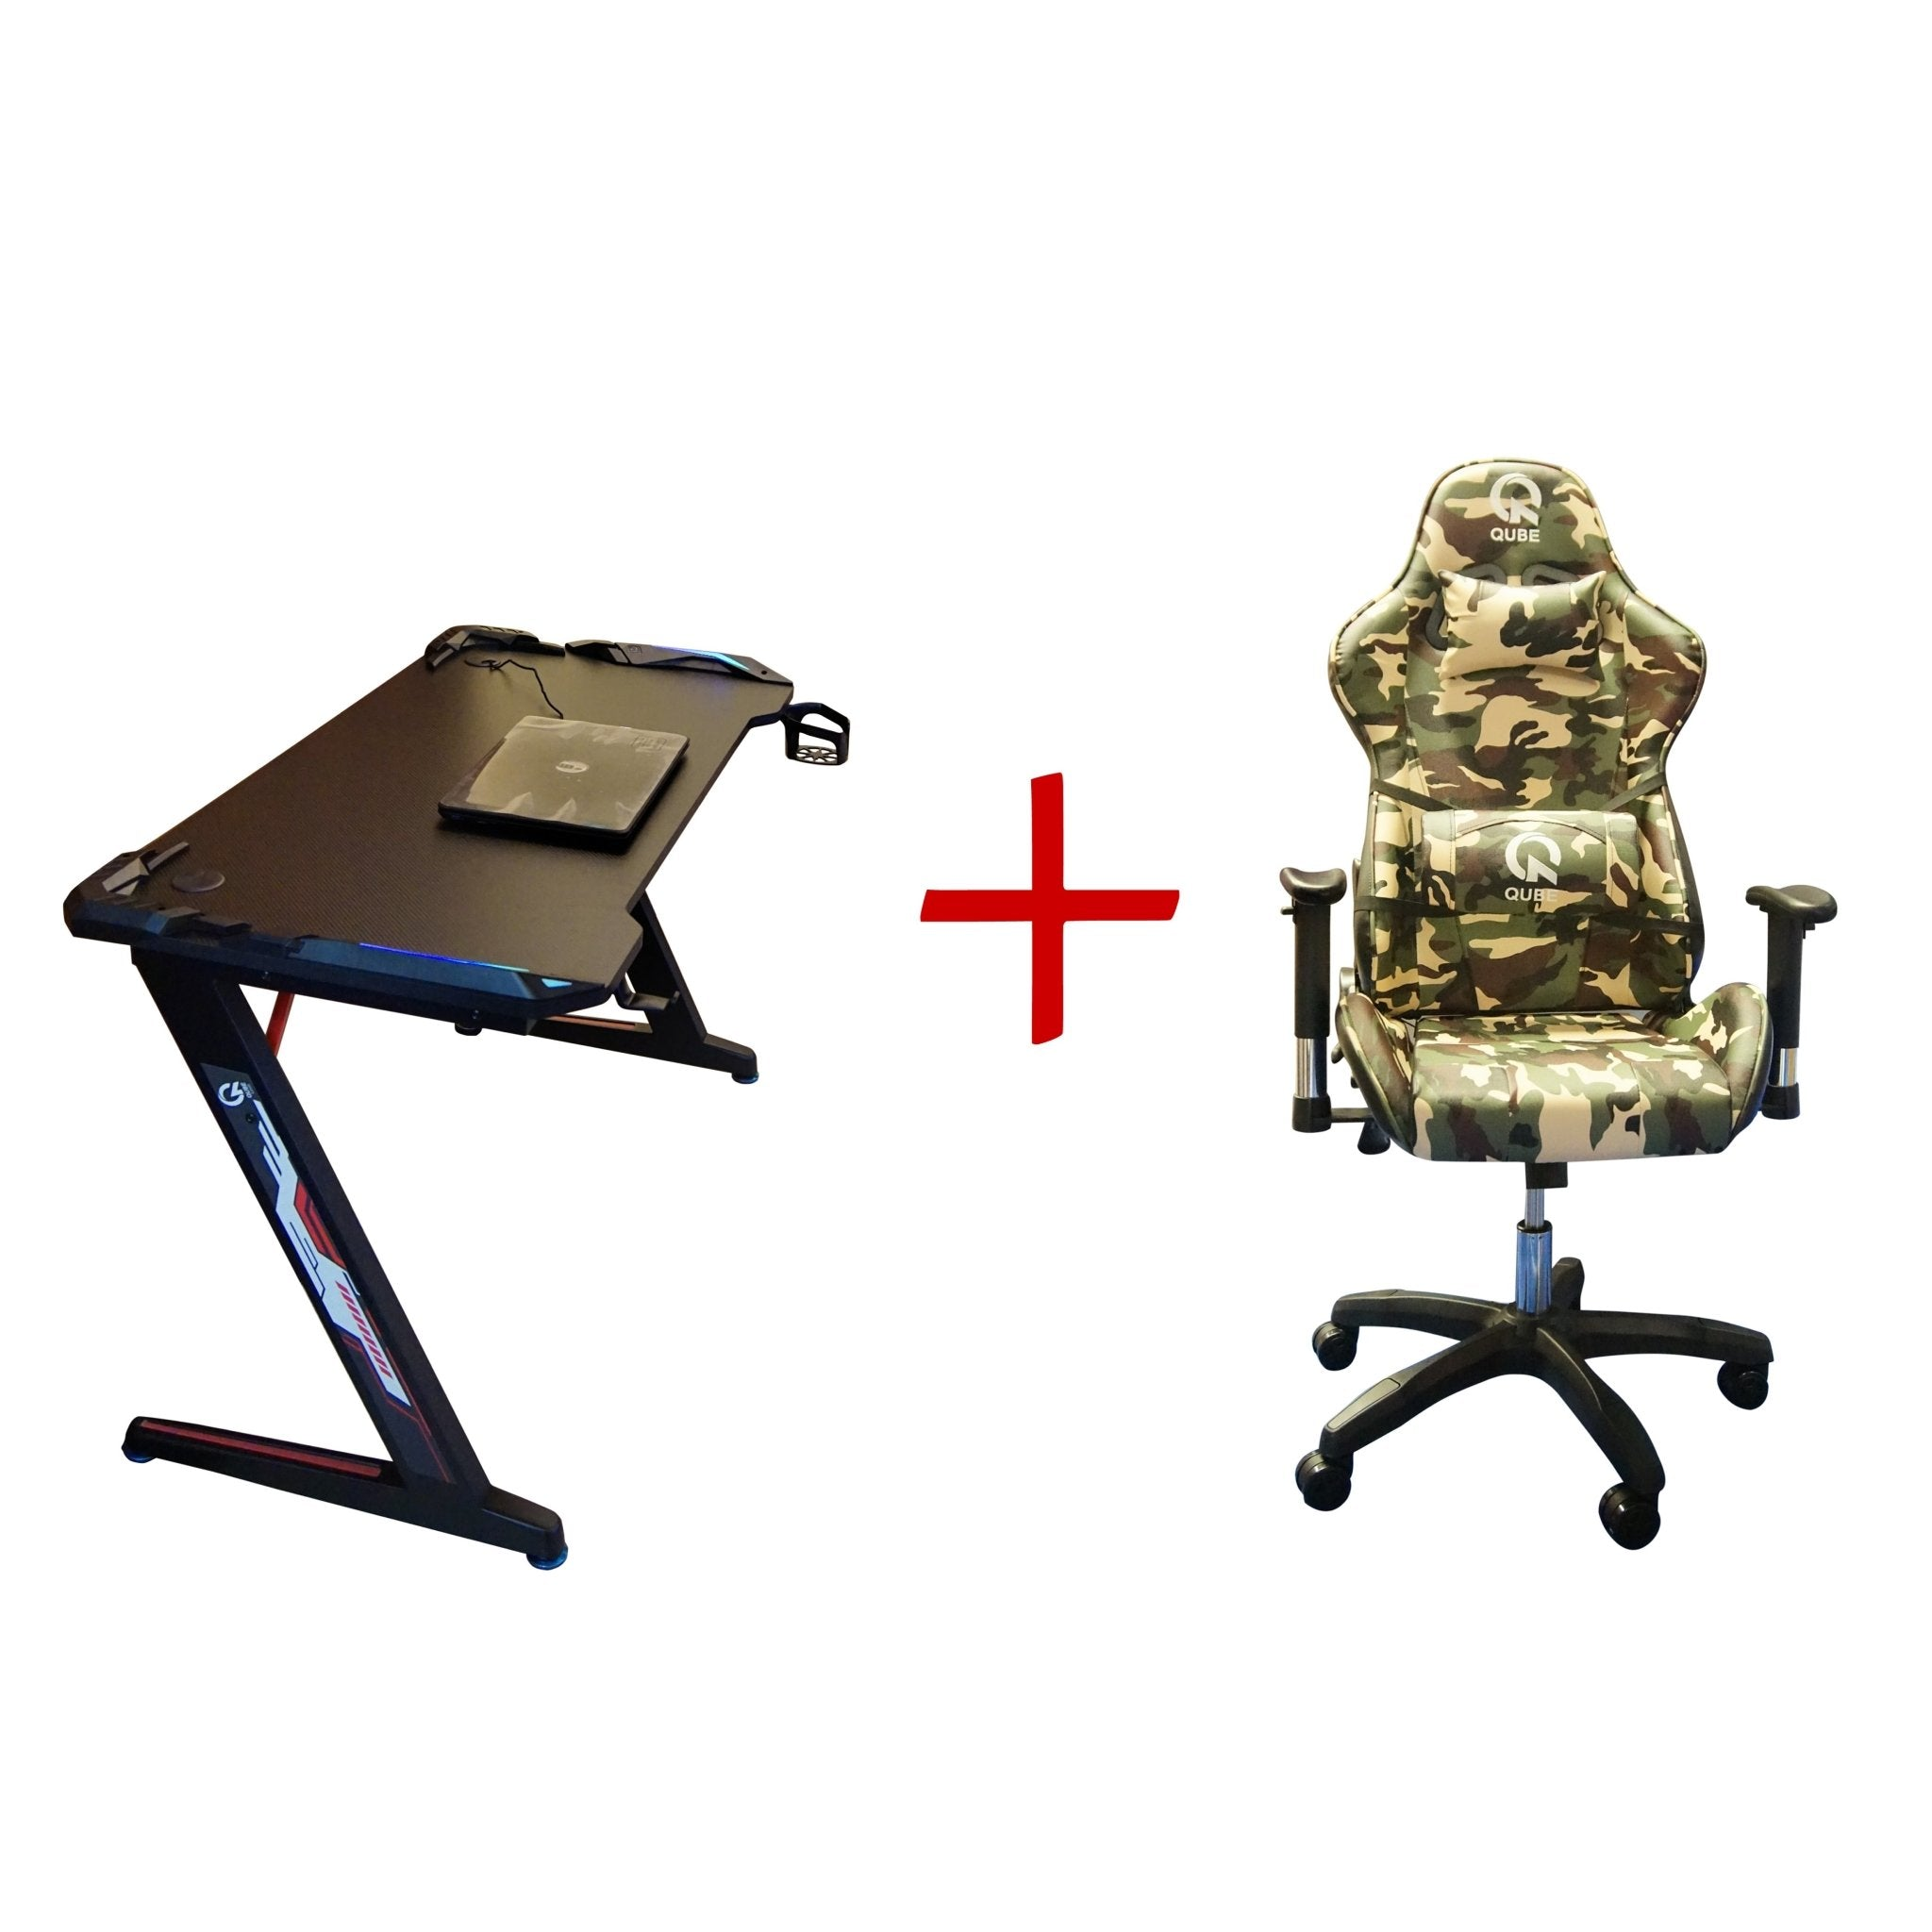 Qube Levin Gaming Table + Gaming Chair Bundle - Model One